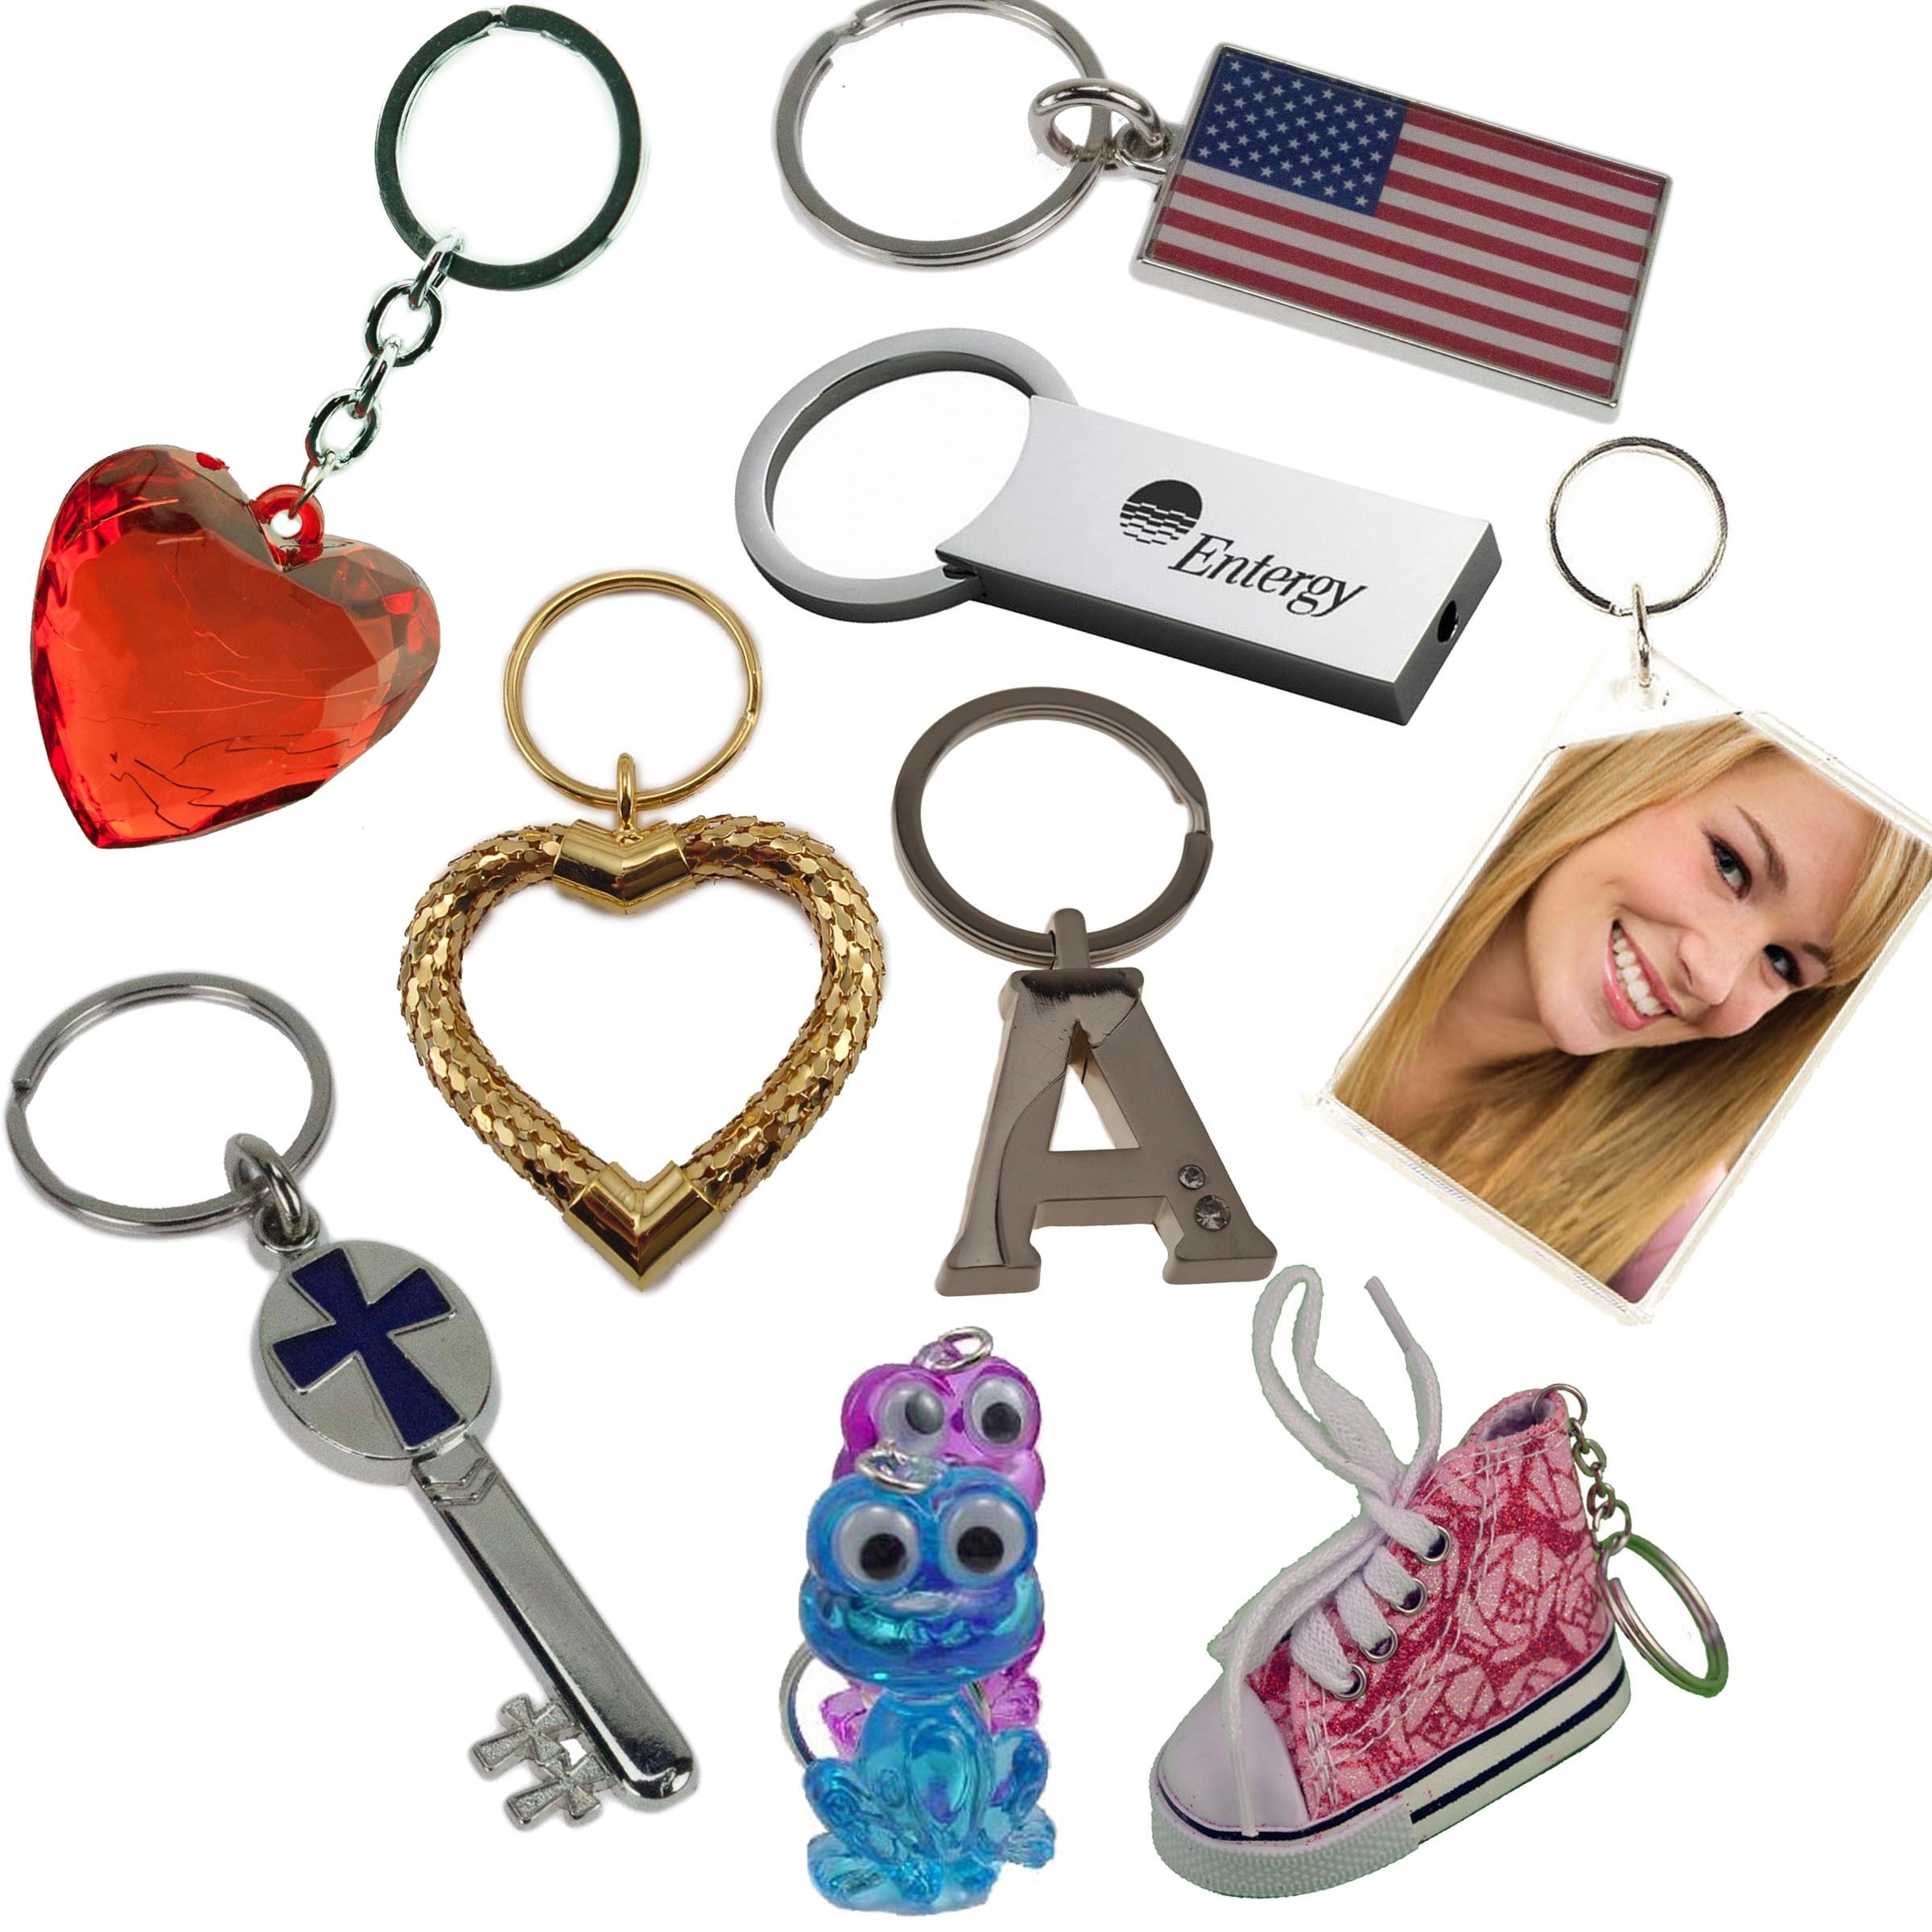 Novelty Key Chains